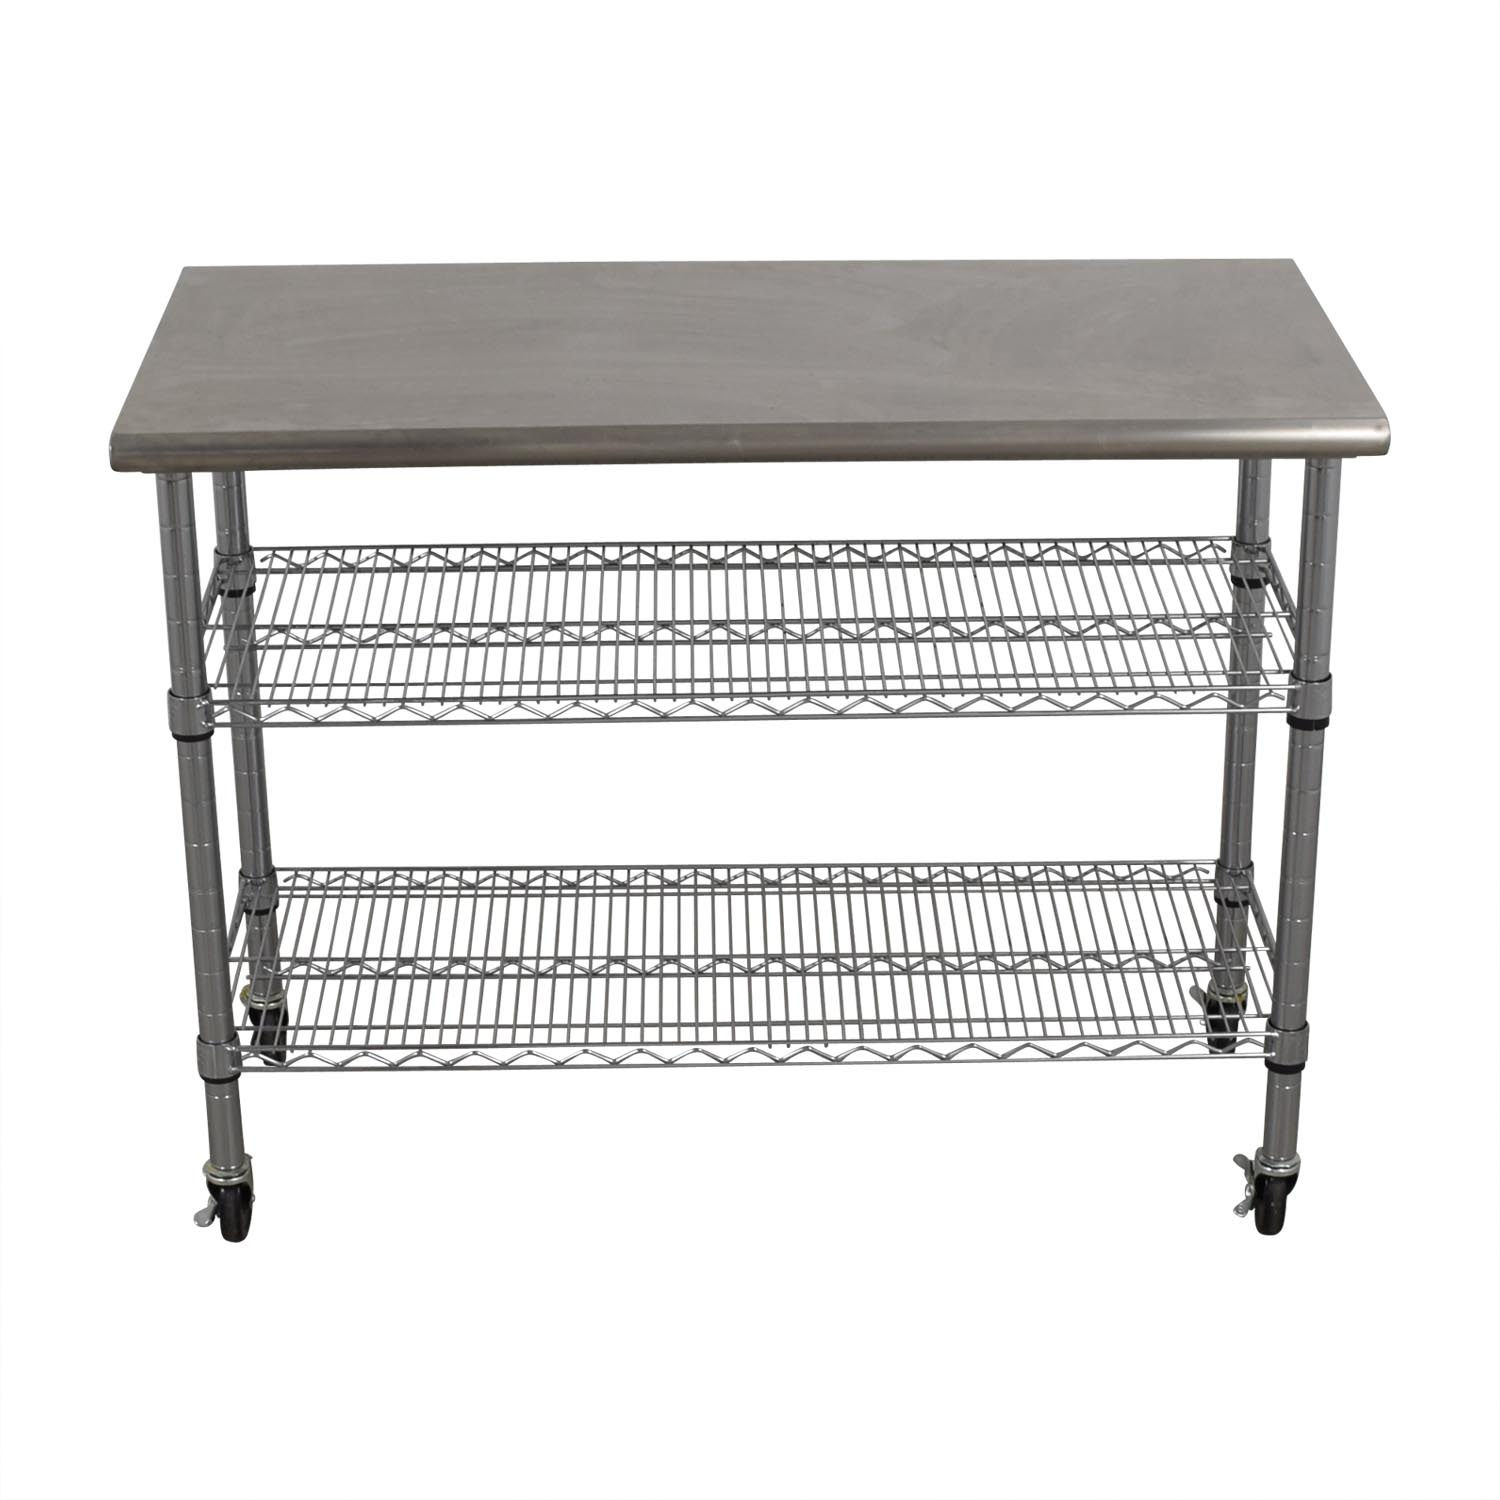 buy Home Depot Home Depot Stainless Steel Utility Cart on Wheels online